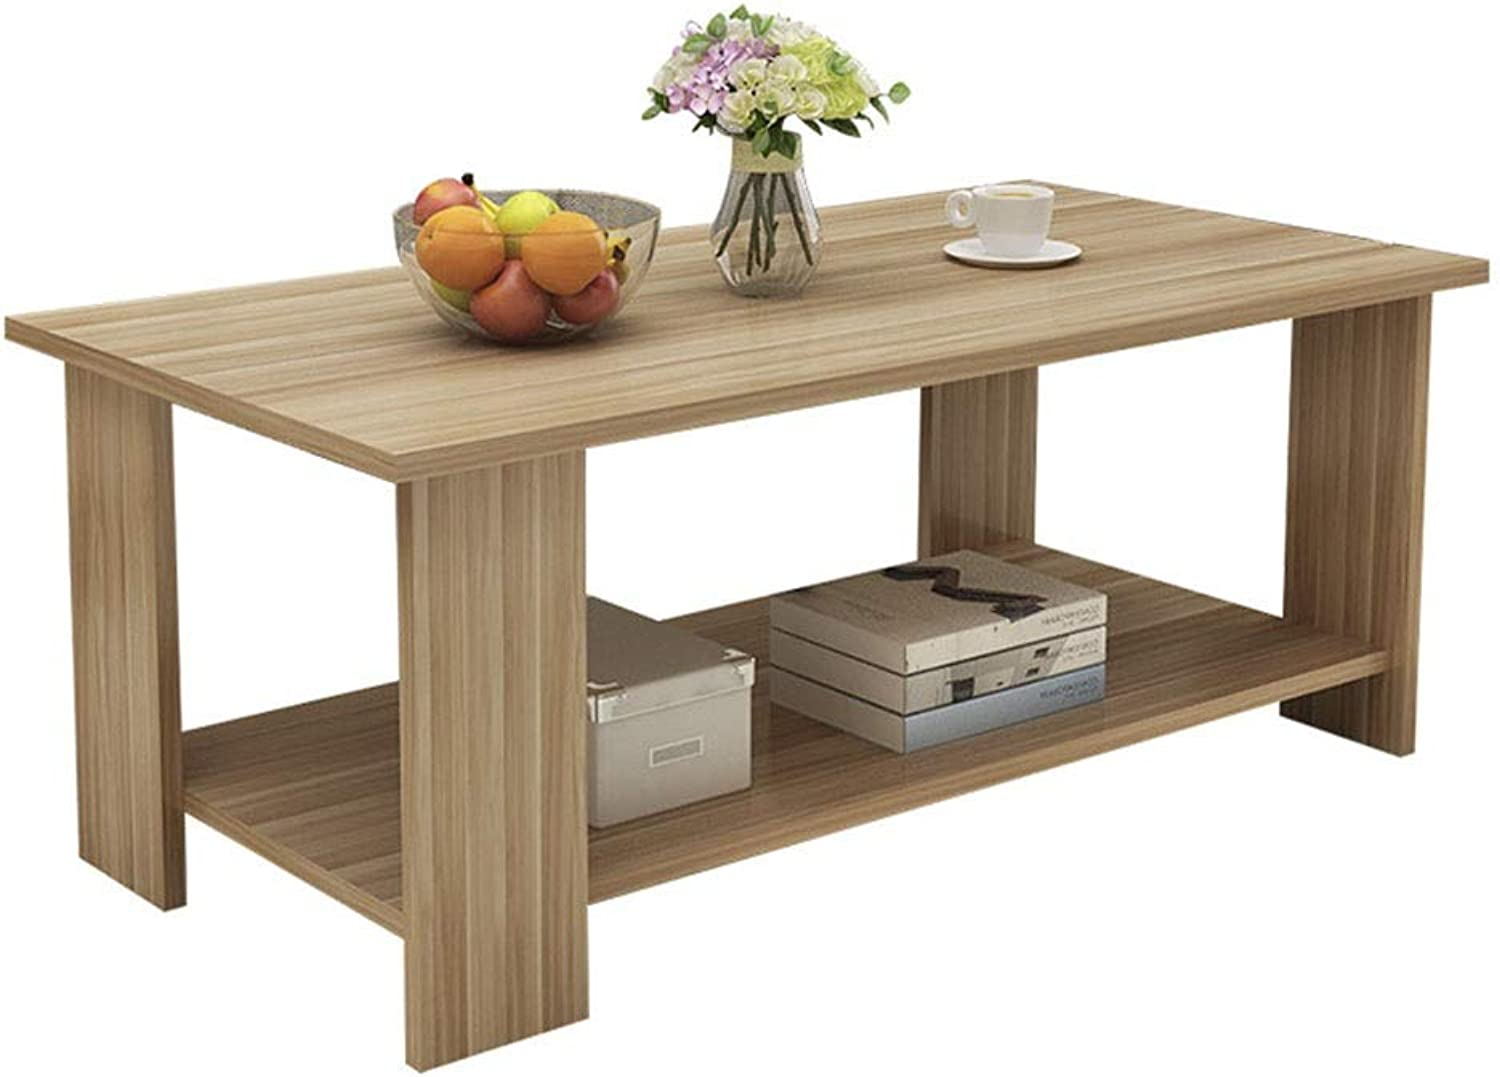 Coffee Table Coffee Table, Solid Wood Double Storey Simple Storage Table Small Apartment Tea Table Side Table 3 Size (Size   100  48  42cm)